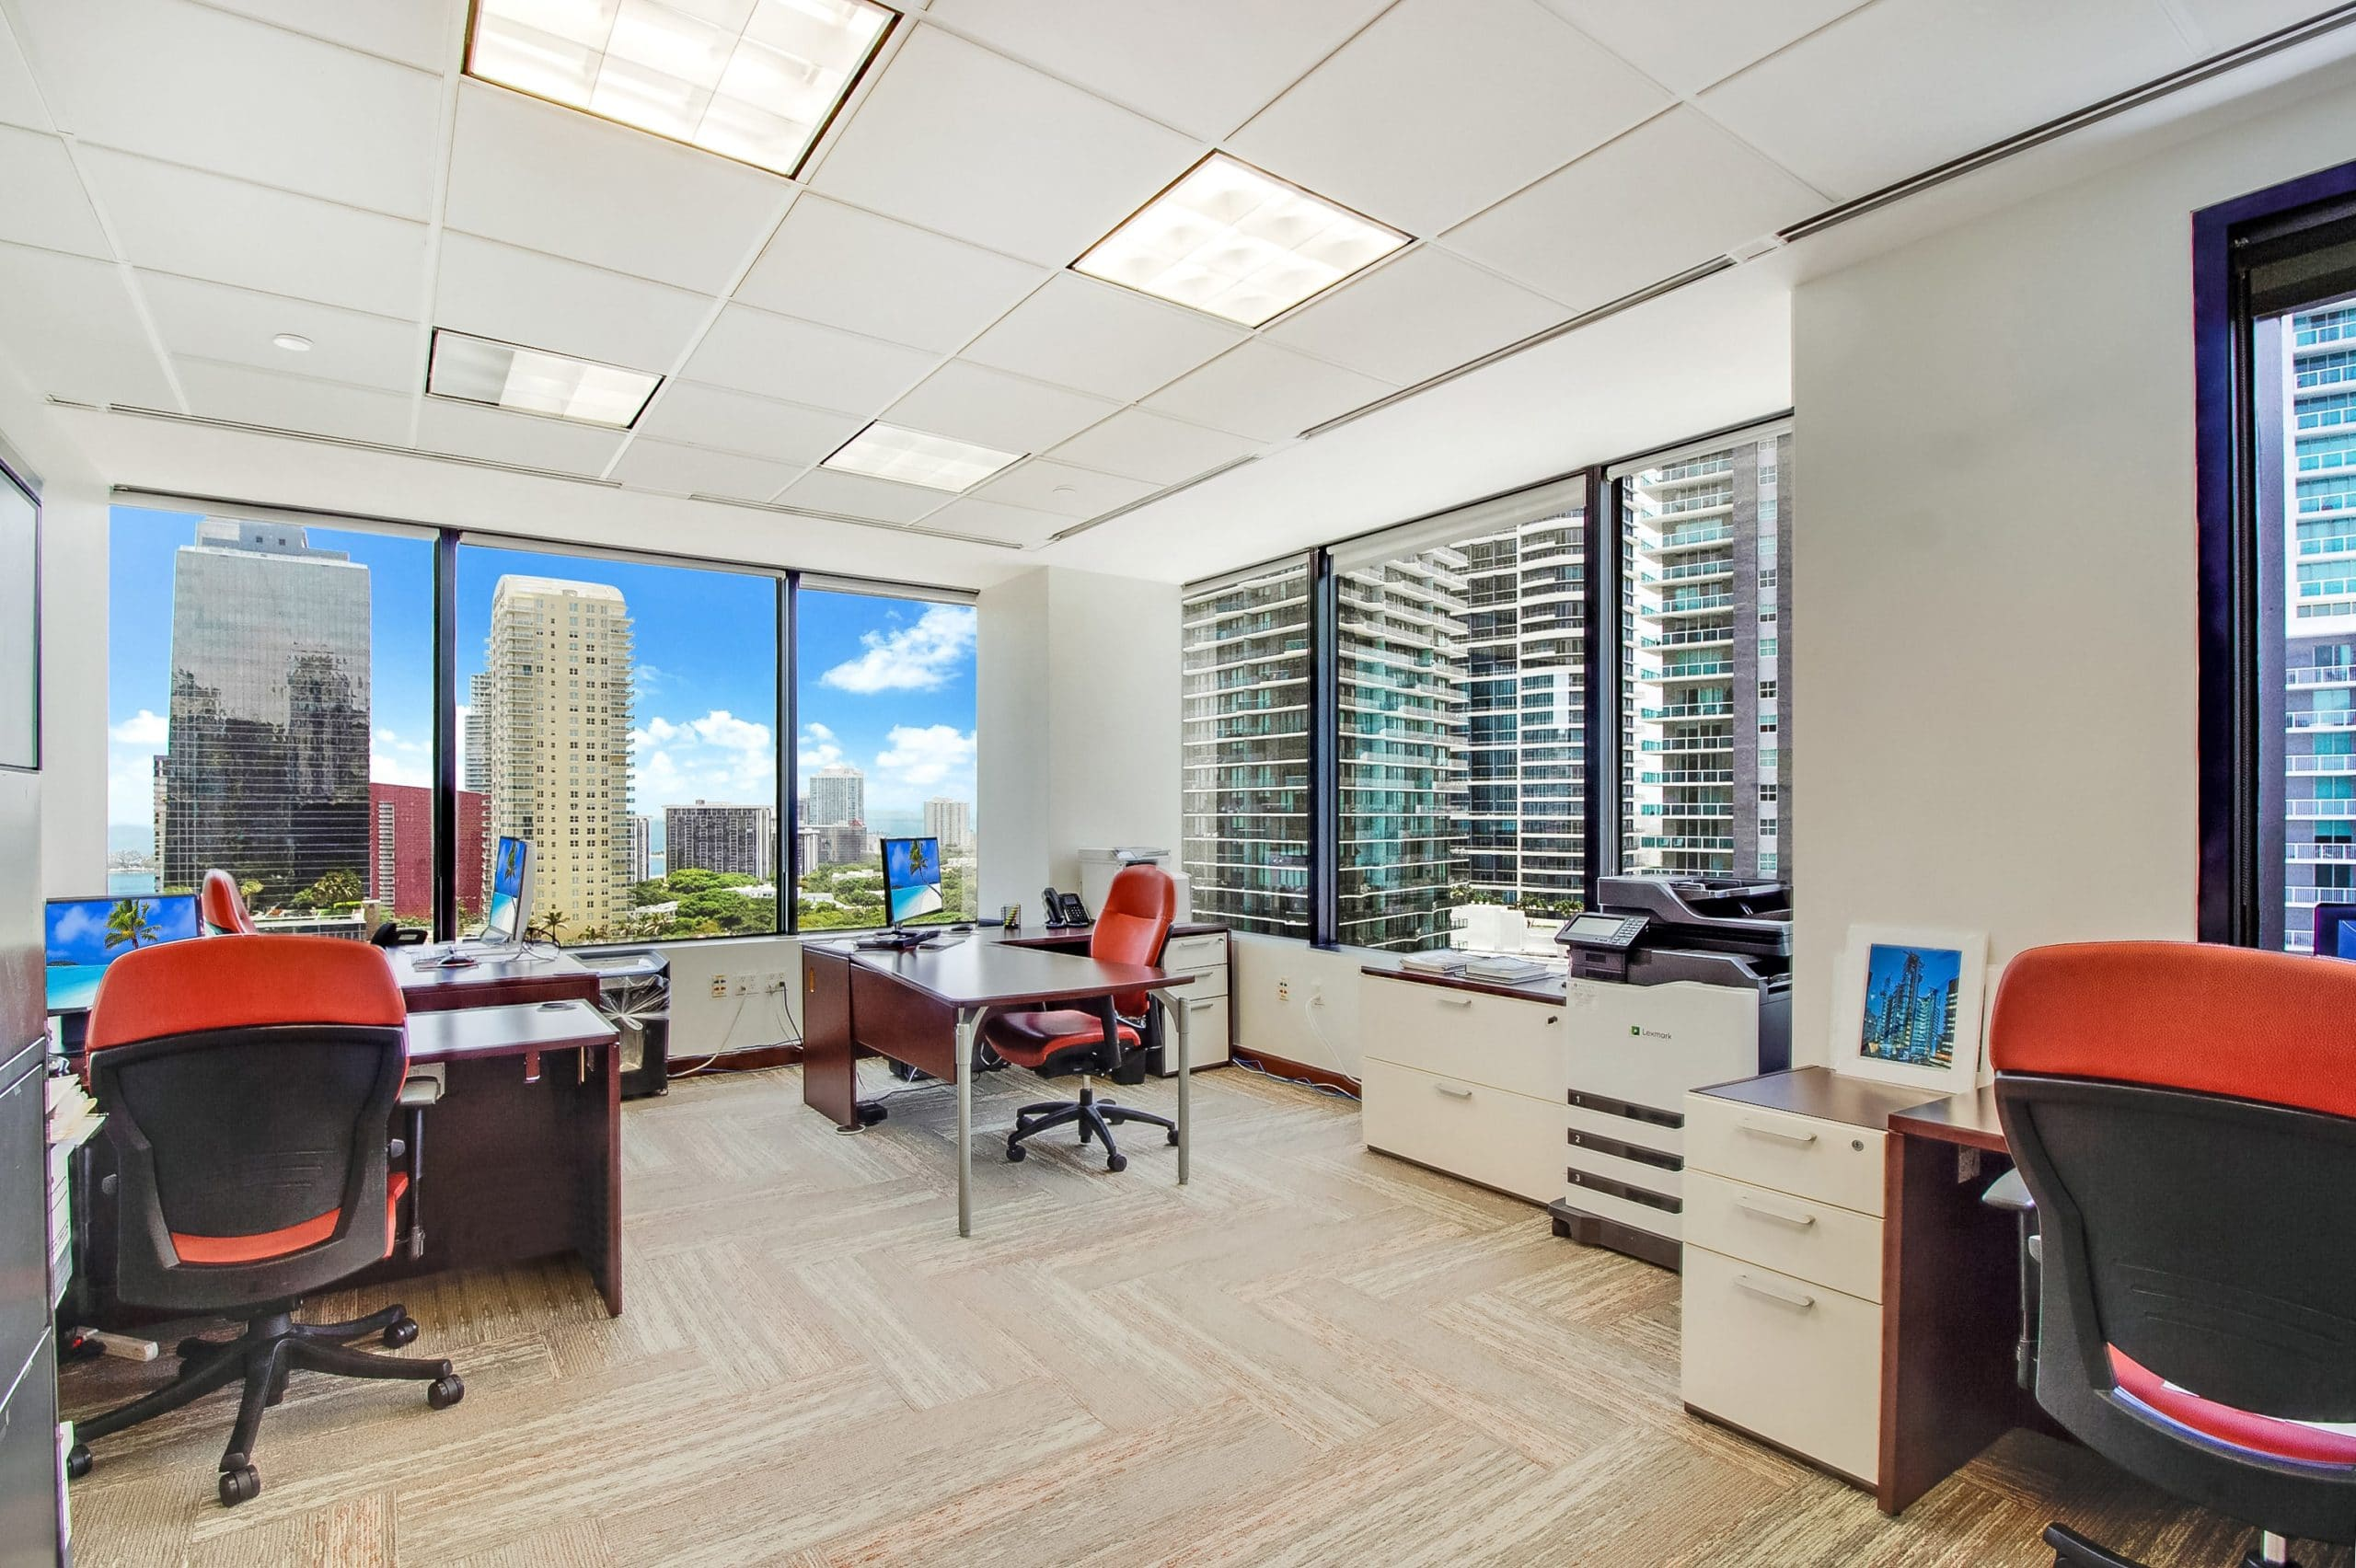 Virtual Offices Miami - Temp Offices or Meeting Room